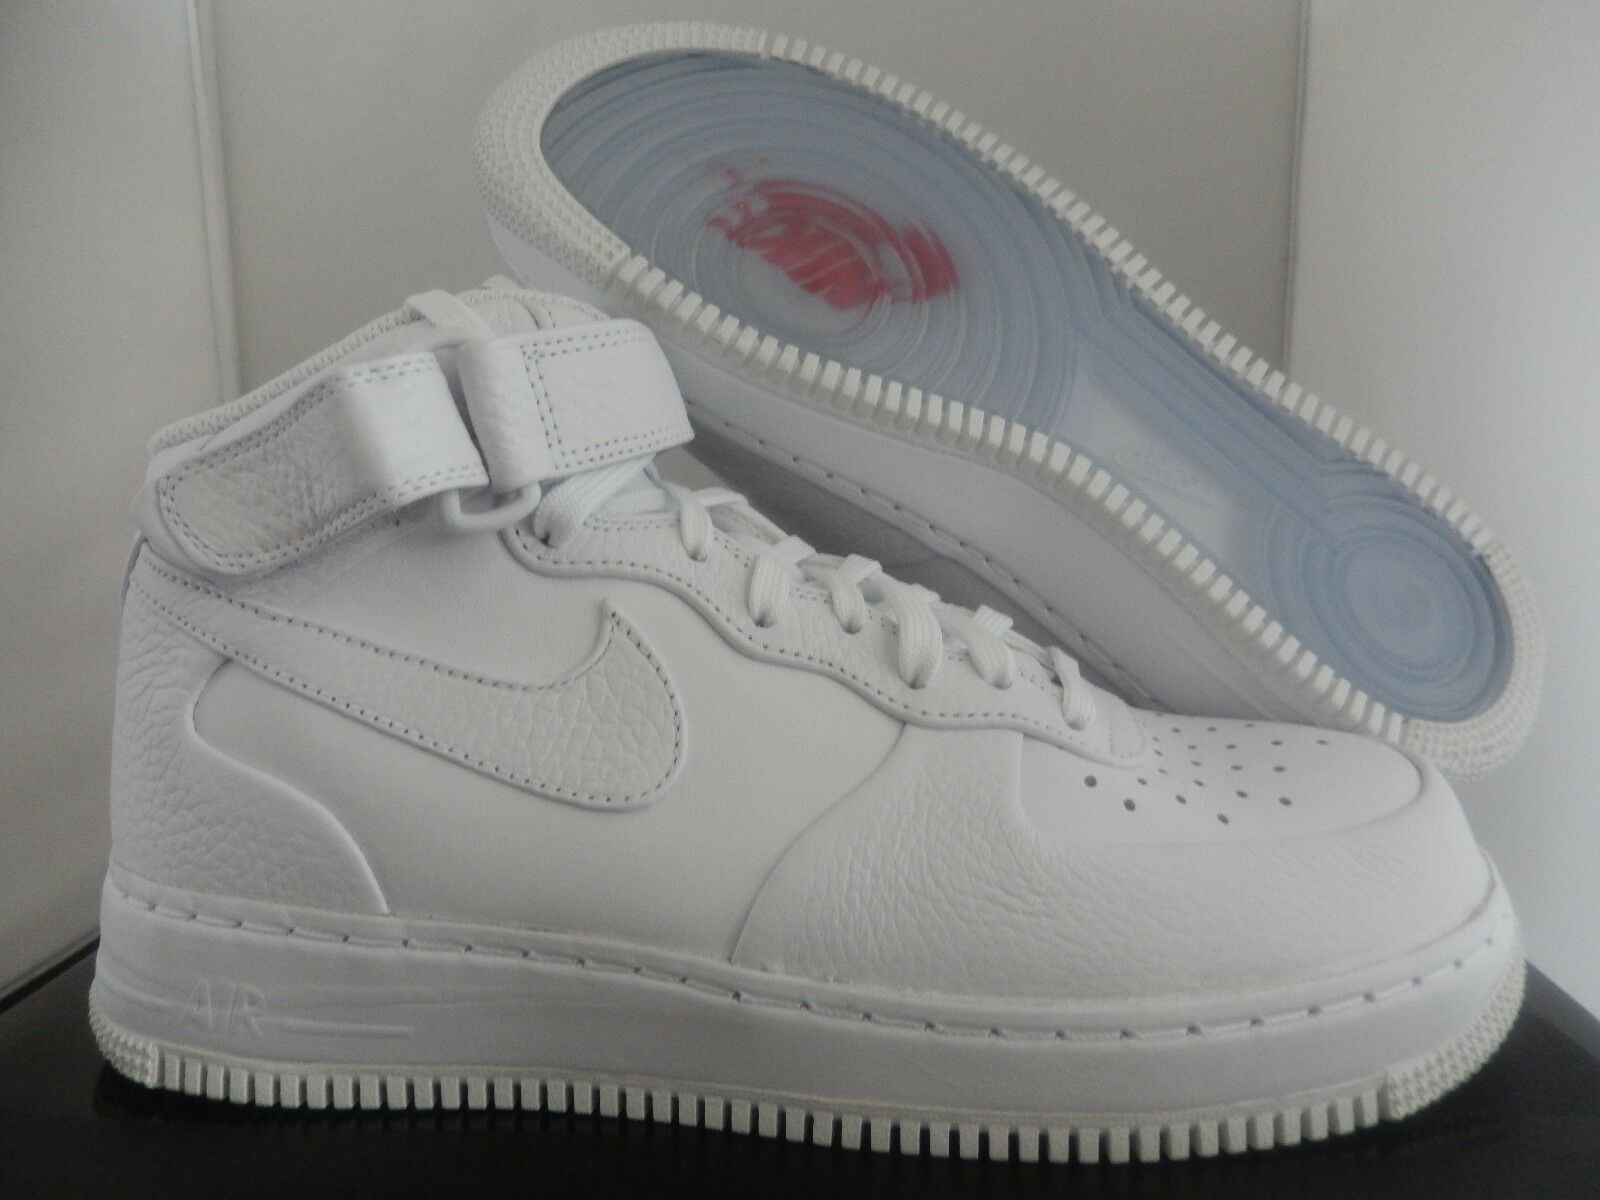 NIKE AIR FORCE 1 MID CMFT SP WHITE-WHITE-TEAM ORANGE SZ 13 [718153-118]